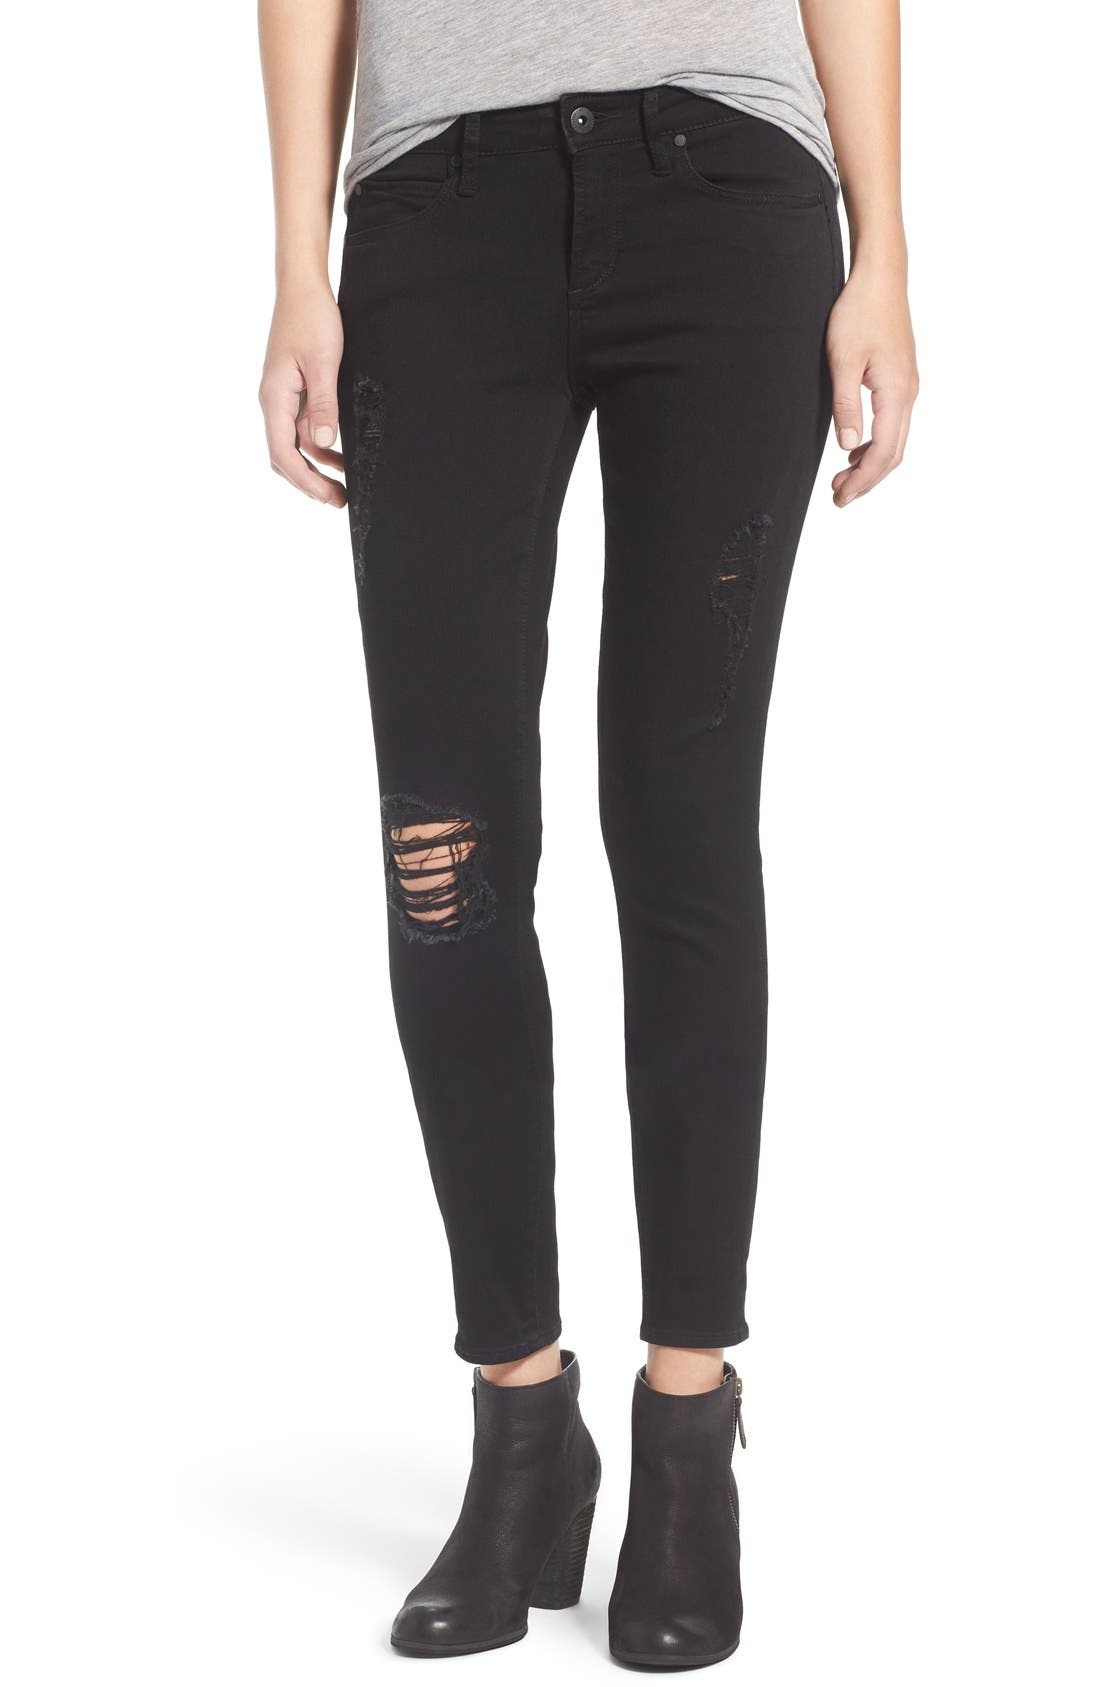 Articles of Society 'Sarah' Skinny Jeans (Black Cast)